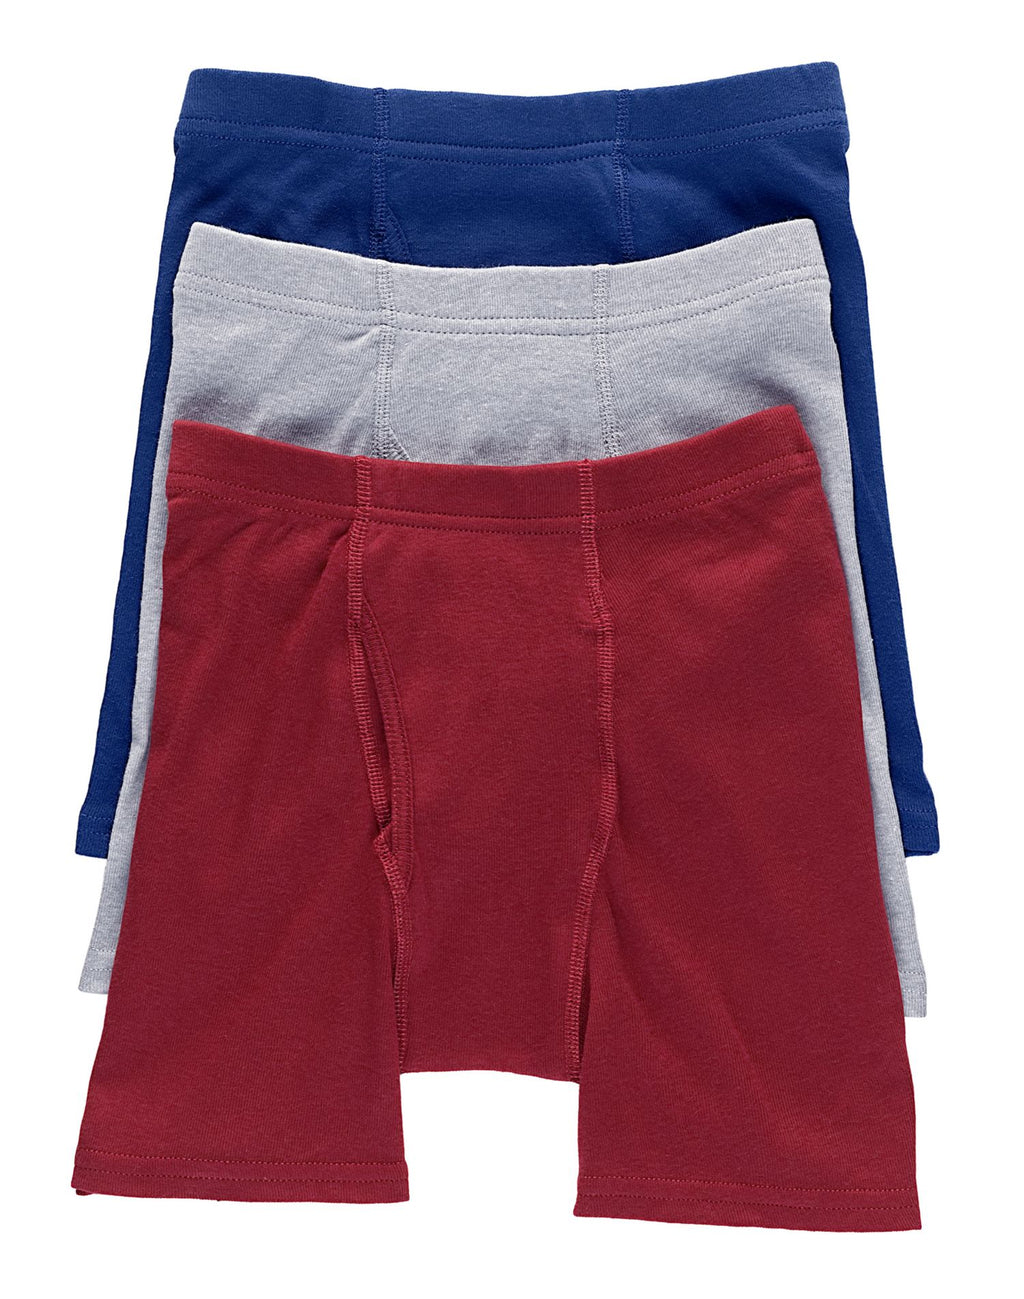 Hanes Classics Boy's ComfortSoft Dyed Boxer Briefs 3 Pack